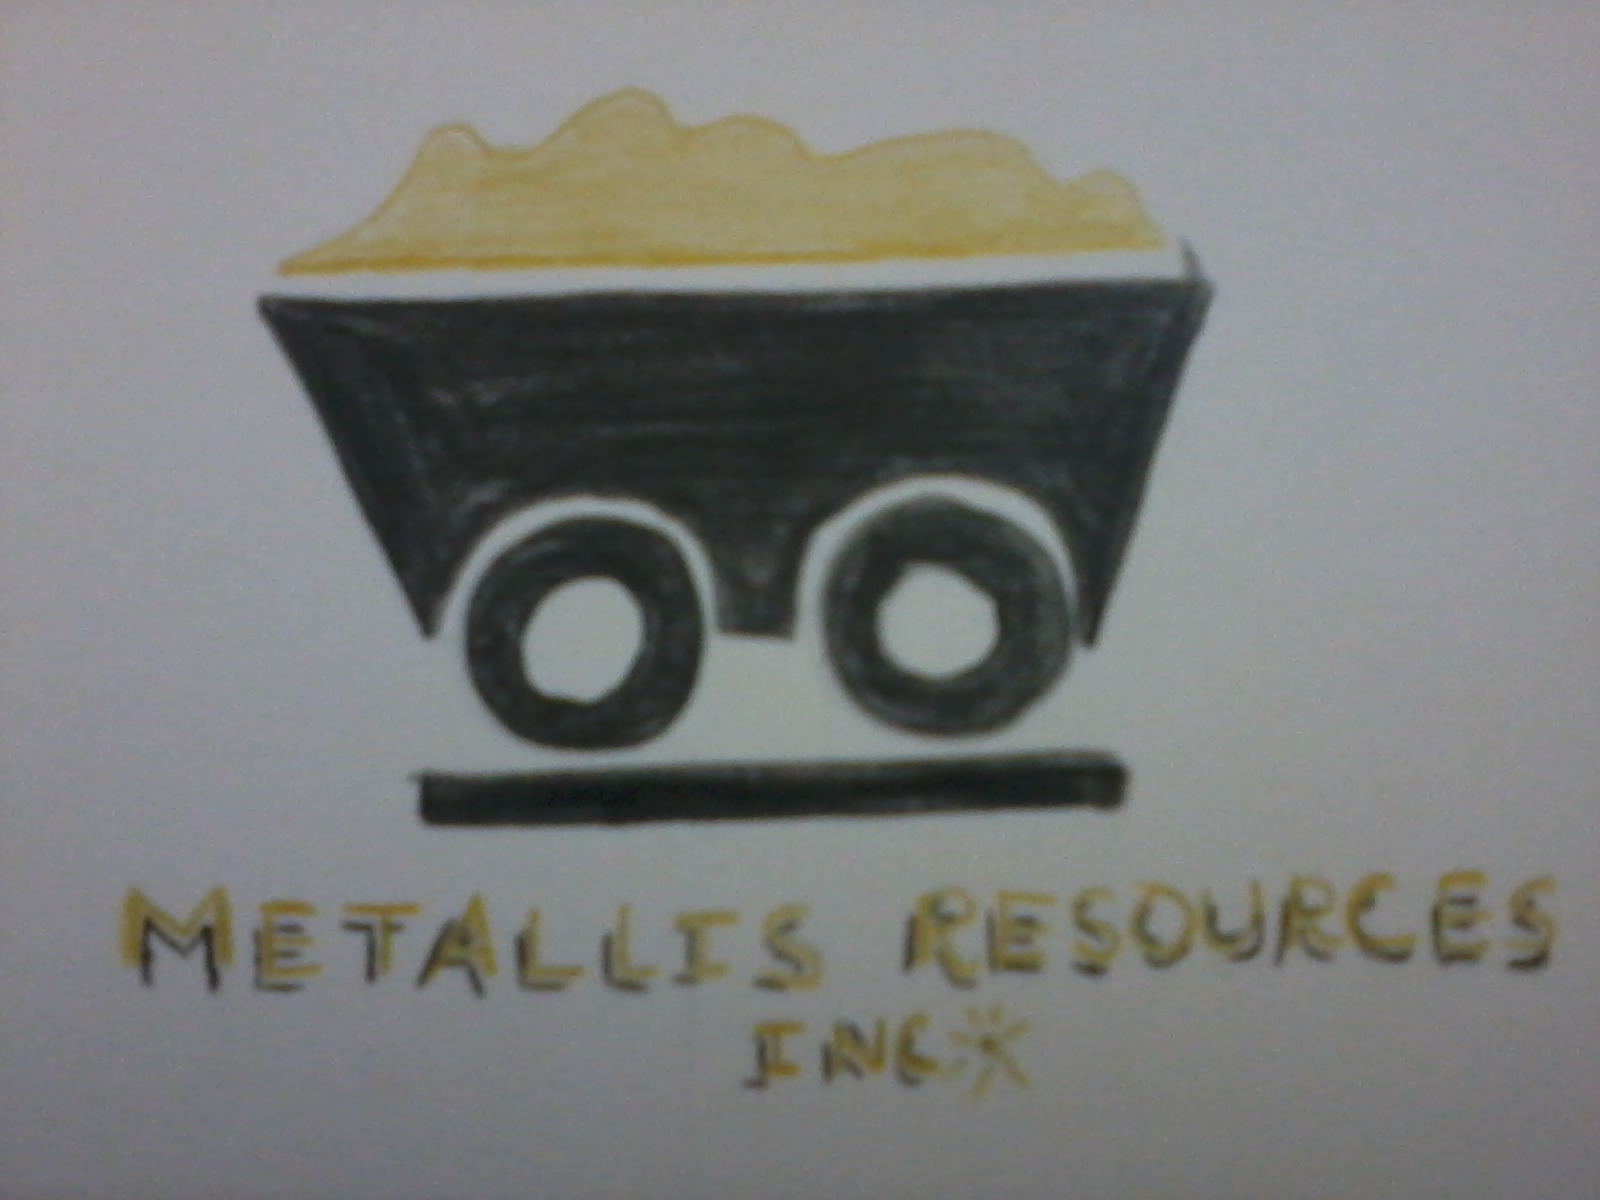 Logo Design by mediaproductionart - Entry No. 34 in the Logo Design Contest Metallis Resources Inc Logo Design.